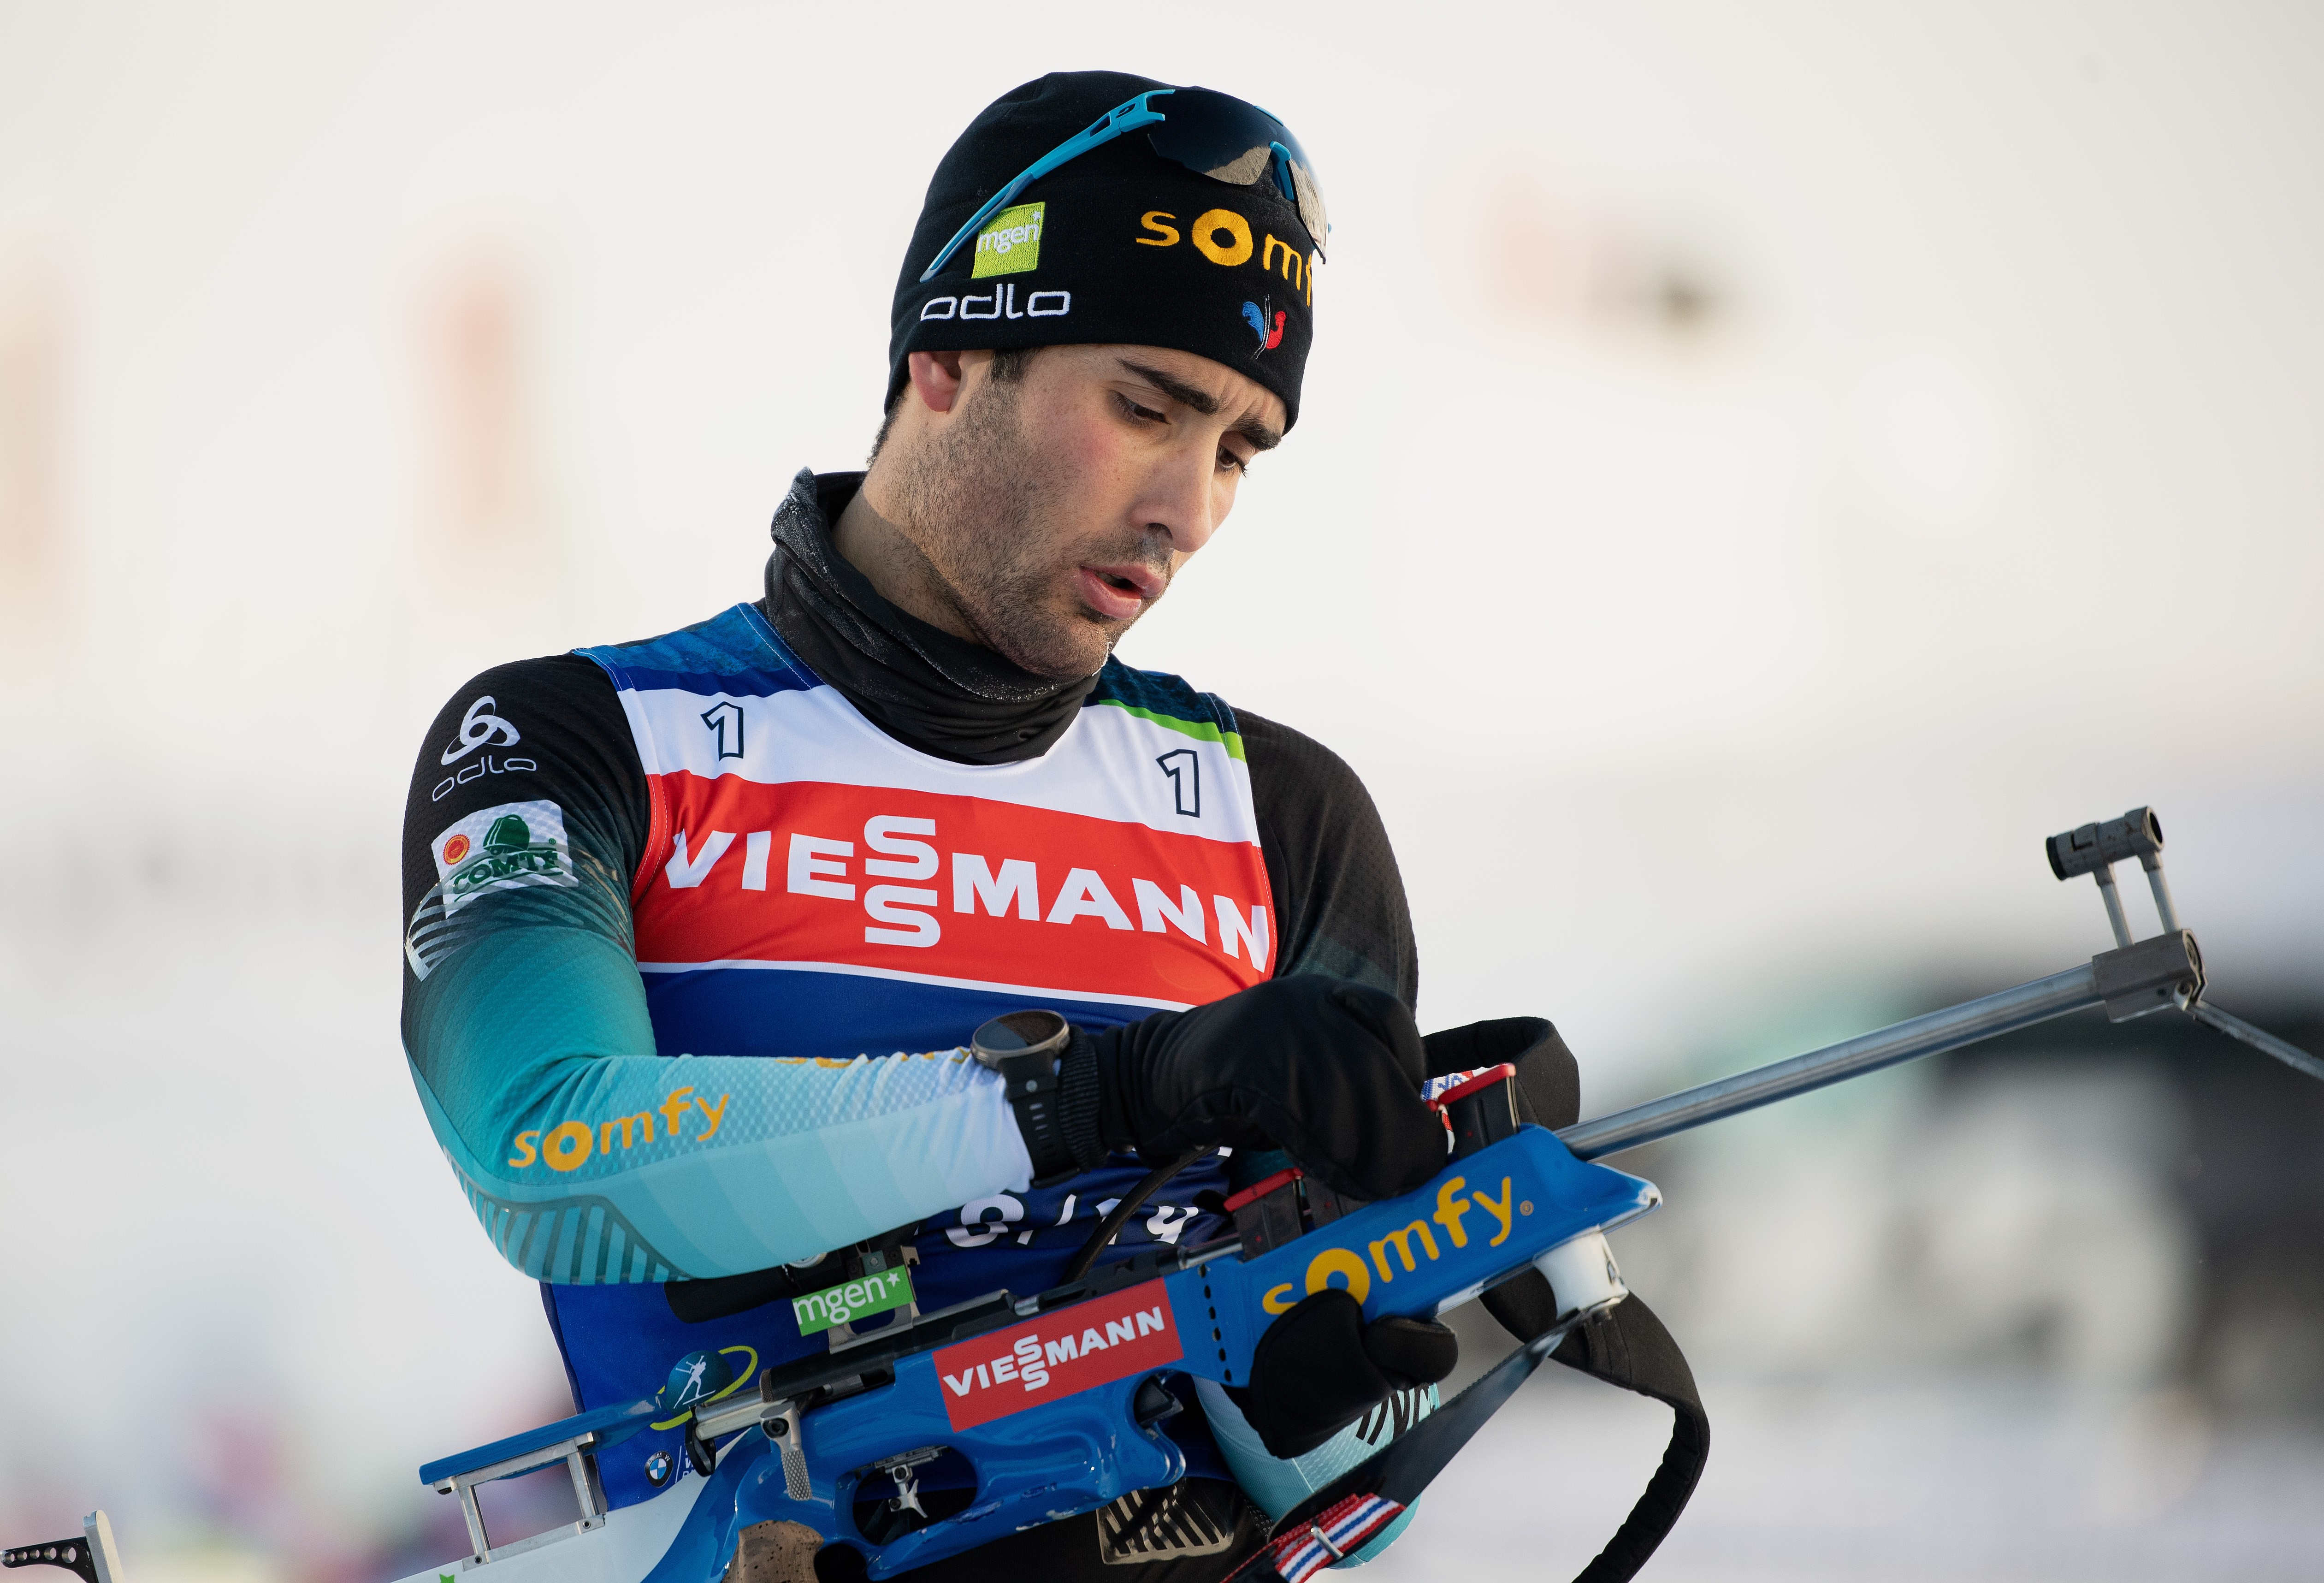 HOCHFILZEN, AUSTRIA - DECEMBER 13: Martin Fourcade of France practices at the shooting range during the Official Training for the IBU Biathlon World C